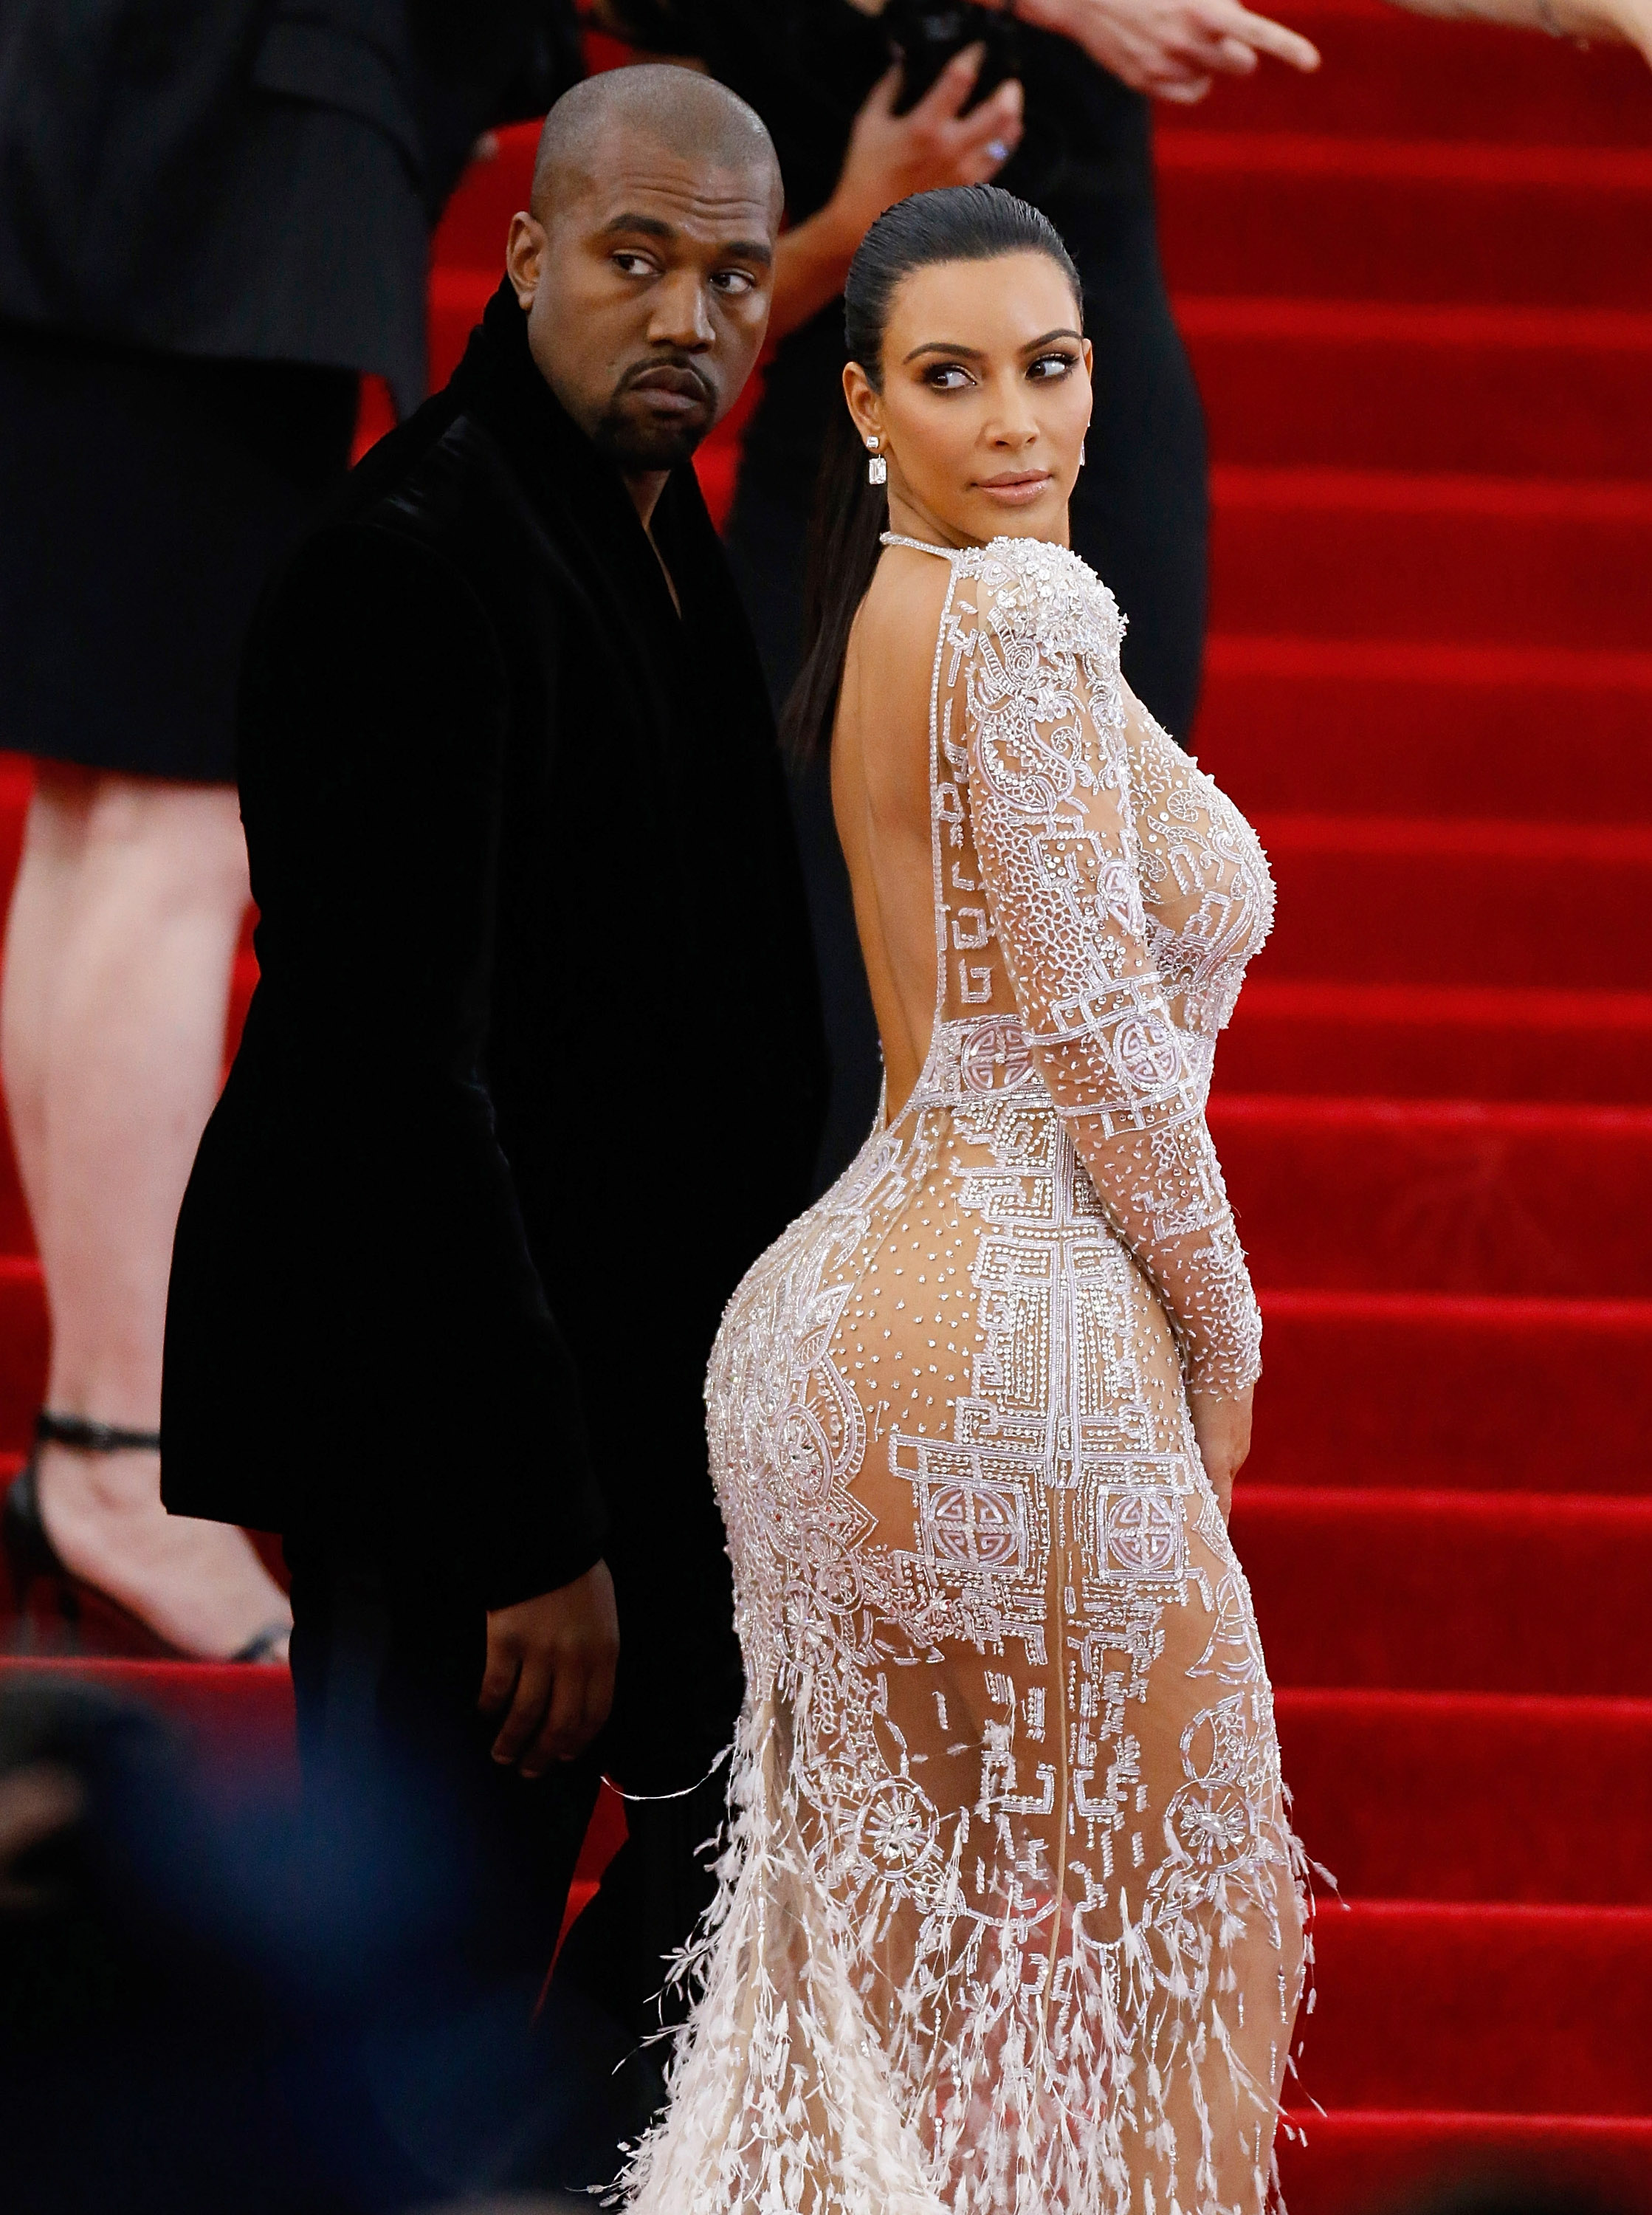 "The world of fashion is currently in a state of flux and it's largely due to the influence of two unlikely figures -  Kanye and Kim Kardashian West.<br /> <br /> Love or loathe them, the husband and wife duo are changing the fashion landscape in the same way they are transforming the entertainment, music and tech industries. <br /> <br /> From their joint Vogue cover in 2014 to West's highly-coveted Yeezy line and the reality star's role as muse to designers such as Donatella Versace and Ricardo Tisci, the pair have broken down barriers for race, style, trends and body shape.<br /> <br /> The most significant proof of this came by way of Louis Vuitton's Menswear Spring/Summer '19 show, held last week in Paris.<br /> <br /> West's former Yeezy collaborator, Fendi intern peer and mentee, Virgil Abloh, became the first African American designer to ever sign on with the historic French fashion house. A landmark move that signifies the changes happening in the fashion world are real.<br /> <br /> Two weeks prior, the <em>Keeping up with the Kardashians</em> star took <a href=""https://style.nine.com.au/2018/06/05/09/01/2018-cfda-awards"" target=""_blank"" title=""home the Council of American Fashion Designer's inaugural 'InfluencerAward'"">home the Council of American Fashion Designer's inaugural 'InfluencerAward'</a>, a merit she accepted with her usual cool and calm demeanour.<br /> <br /> ""I can't believe I am accepting a fashion award when I am naked most of the time!"" Kardashian West exclaimed.<br /> <br /> With Kanye revealing to the <em><a href=""https://www.nytimes.com/2018/06/25/arts/music/kanye-west-ye-interview.html"" target=""_blank"" title=""New York Times"">New York Times</a></em> earlier this week that he was concerned his wife would leave him in wake of the his TMZ scandal, ""I called different family members and was asking, you know, 'Was Kim thinking about leaving me after TMZ?"", we have decided to look back at the most defining and memorable joint style moments of fashion's most controversial couple.<br /> <br /> Click through to see all the sartorial wins of Kim Kardashian and Kanye West."